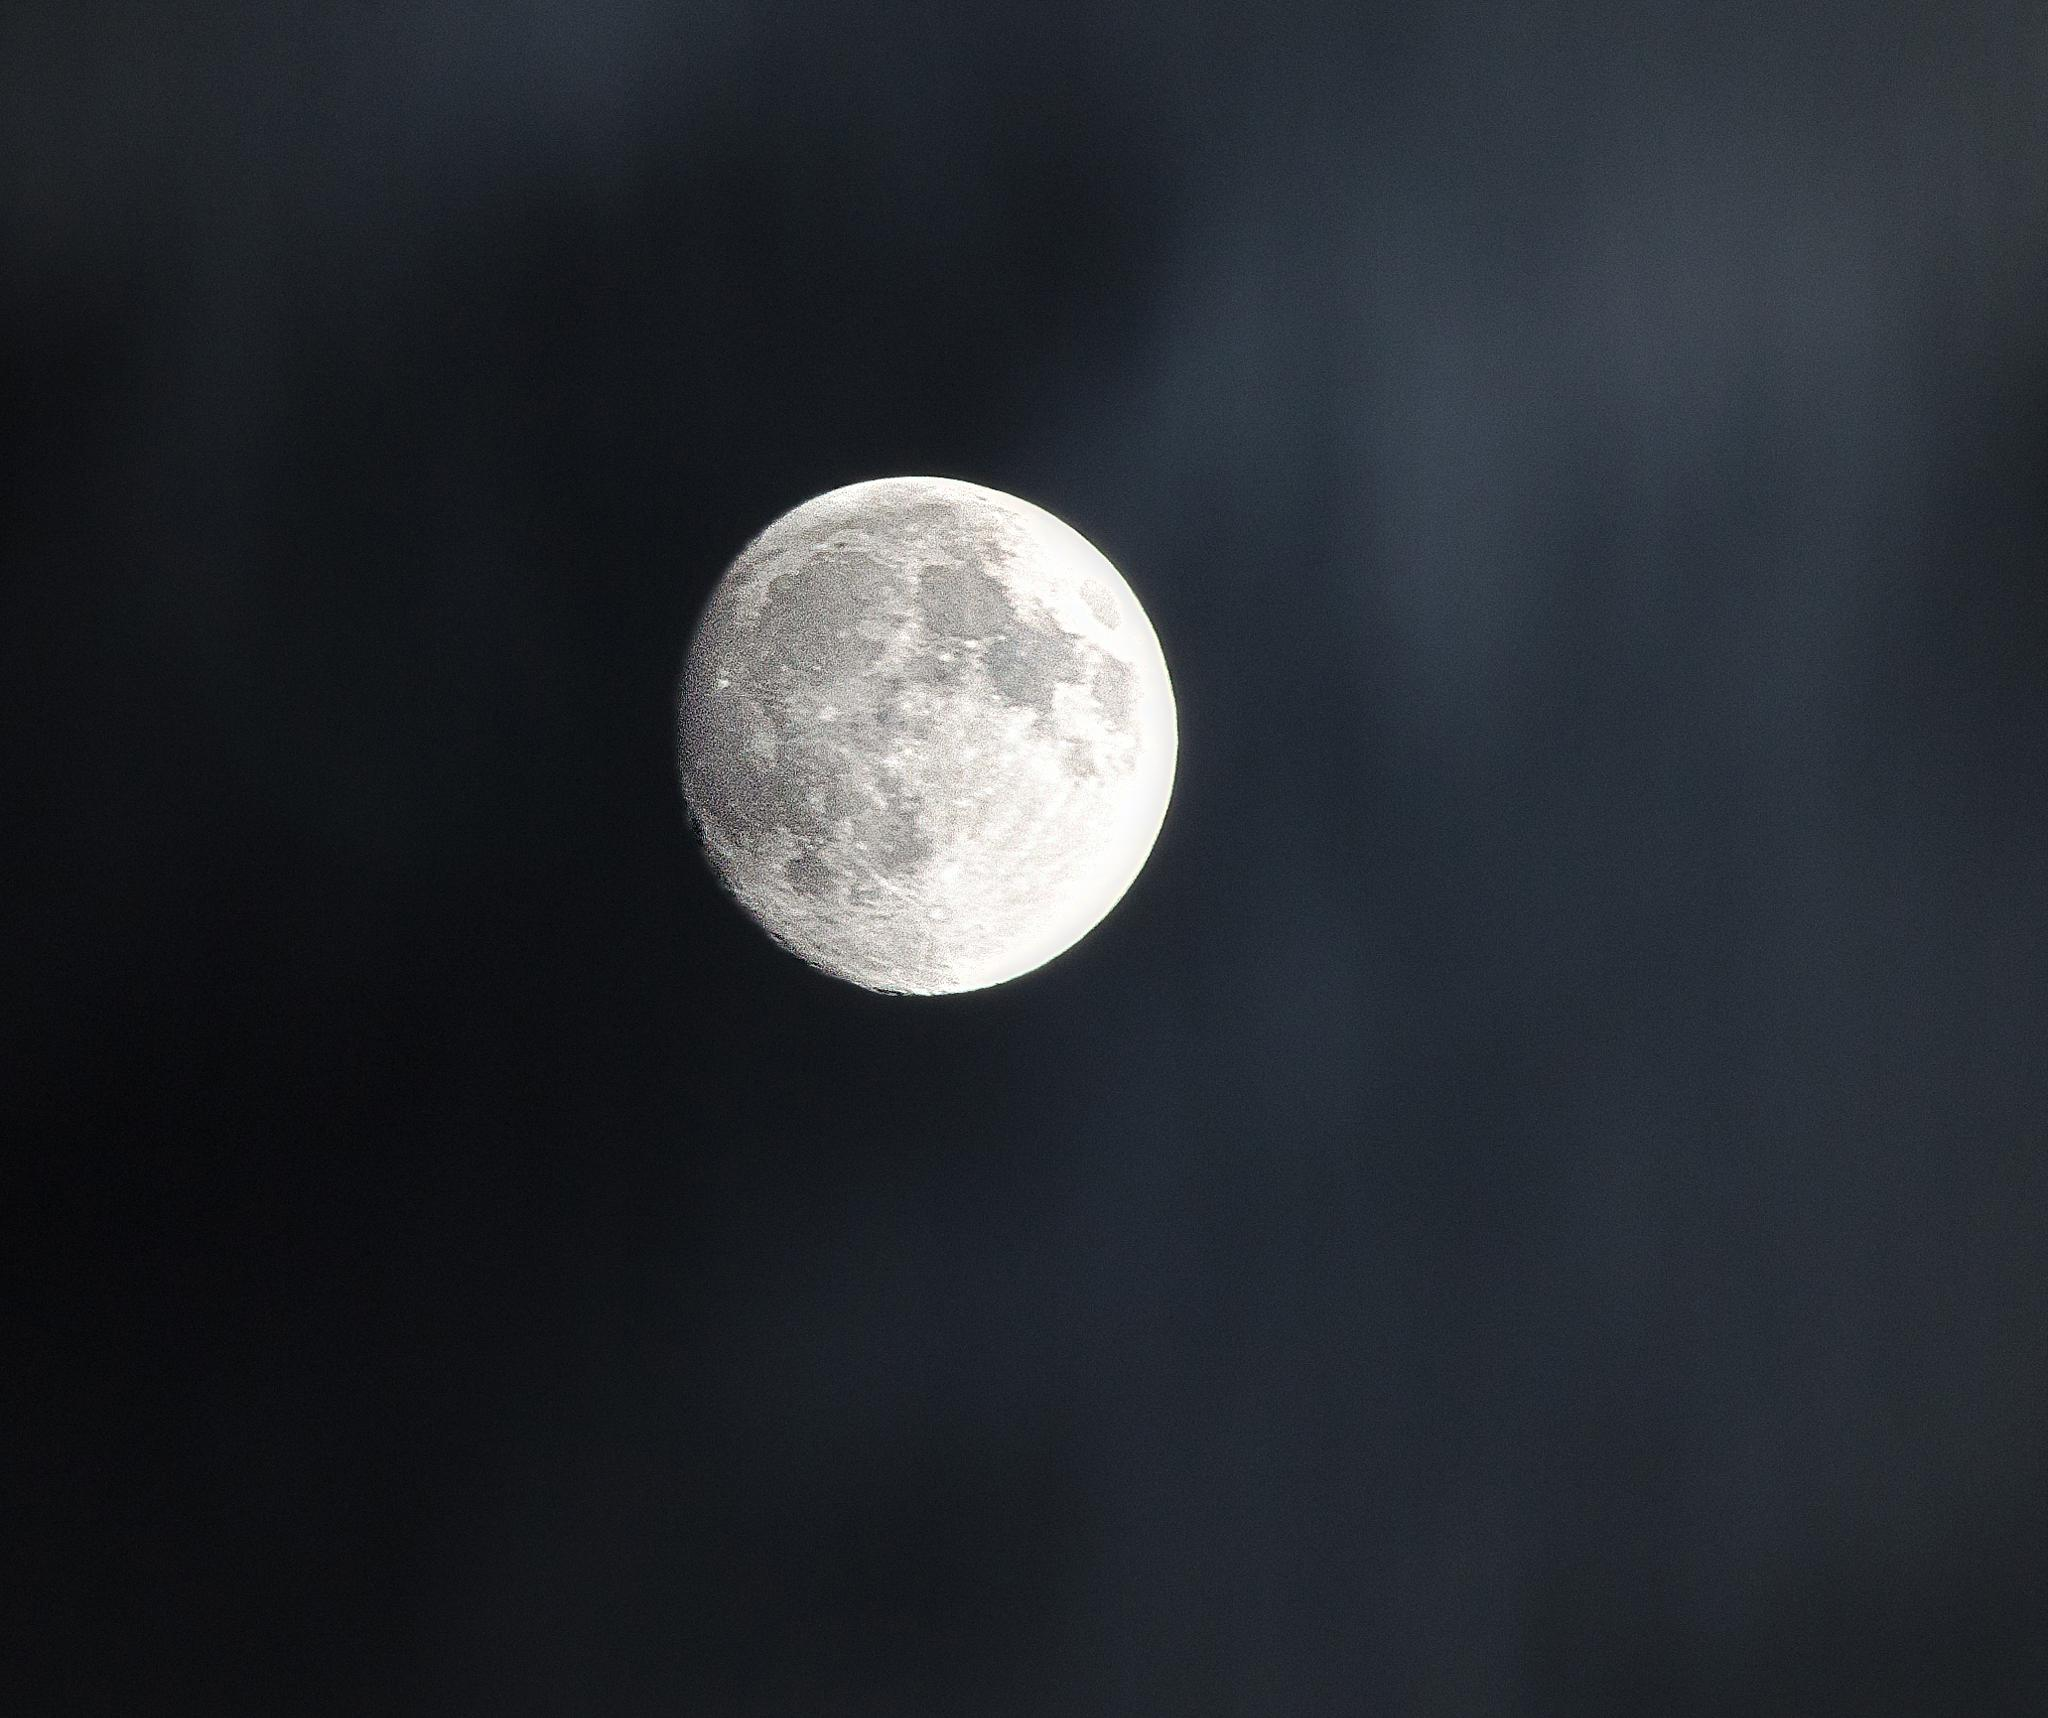 Photo in Astrophotography #full-phase #moon #clouds #cloudy #bright #brightly #partly-cloudy #washington #district of columbia #d.c. #dc #spring #atmosphere #wayne hall #wayne v. hall #wall photography #wall photography design #wall photography and design #wall photo grafx #wallphotografx #graphics #graphic #design #graphic design